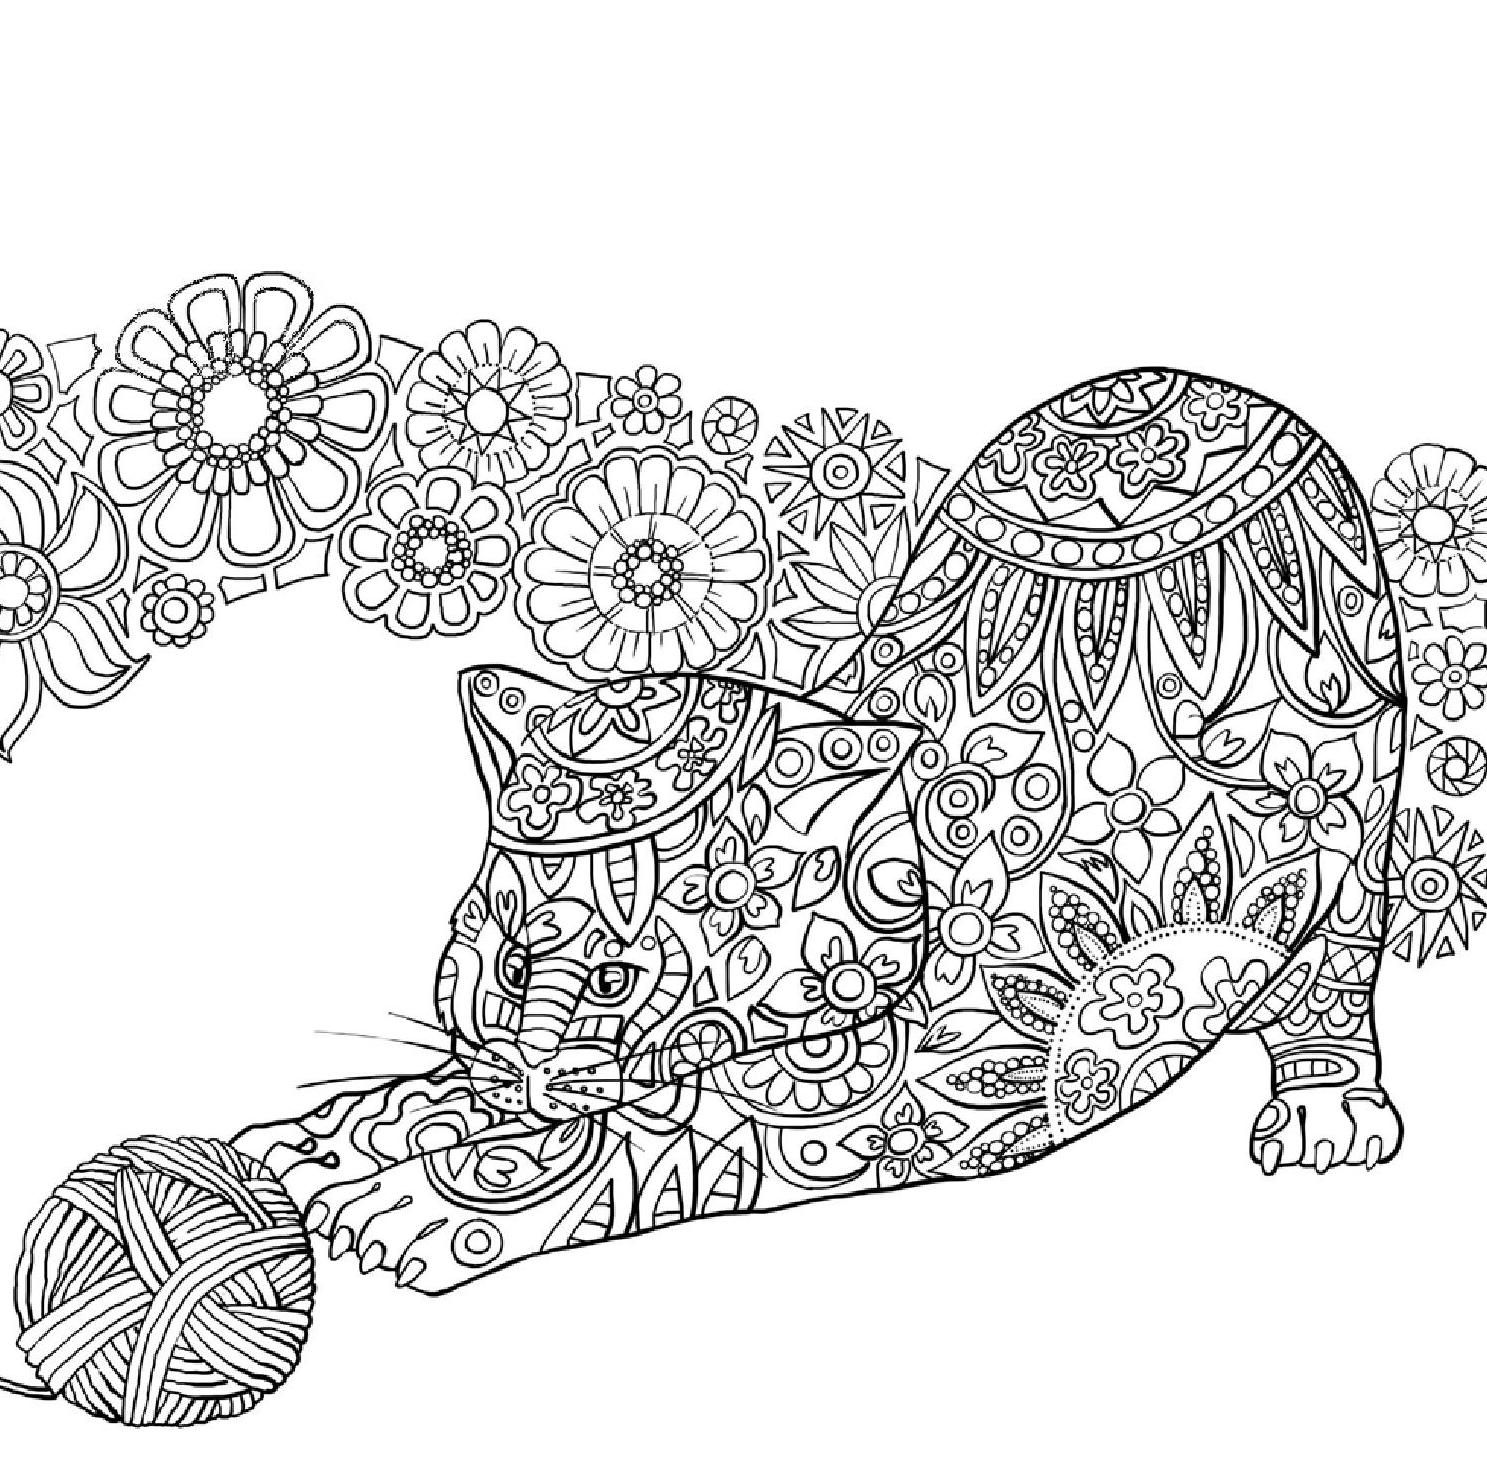 Pin On Coloring For Adults And Kids